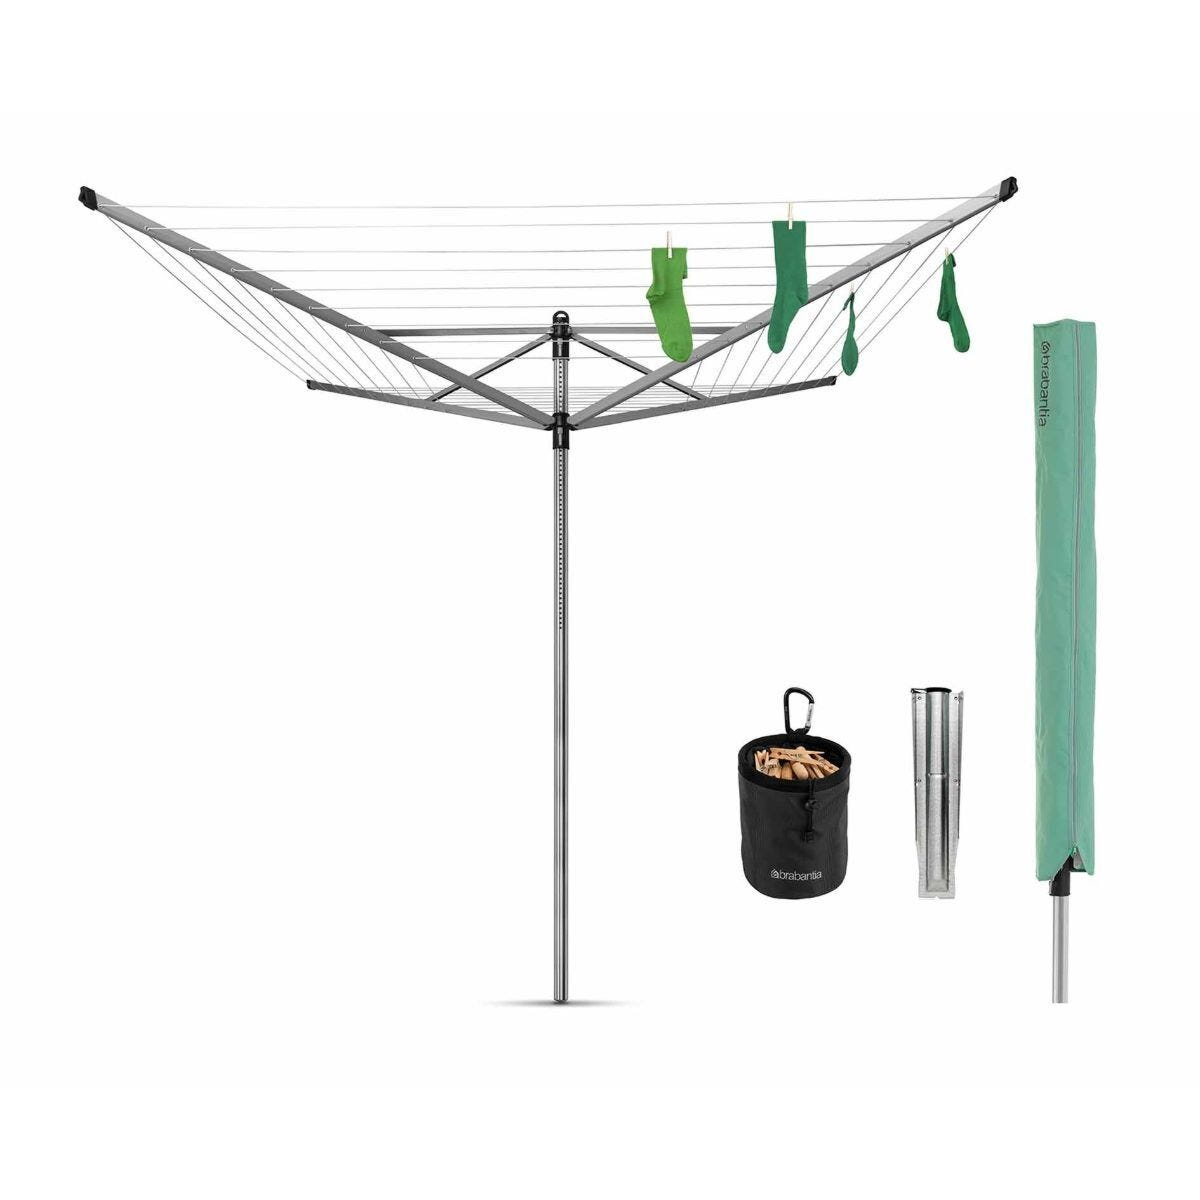 Brabantia Lift-O-Matic 50m Rotary Dryer plus Ground Spike and Accessories